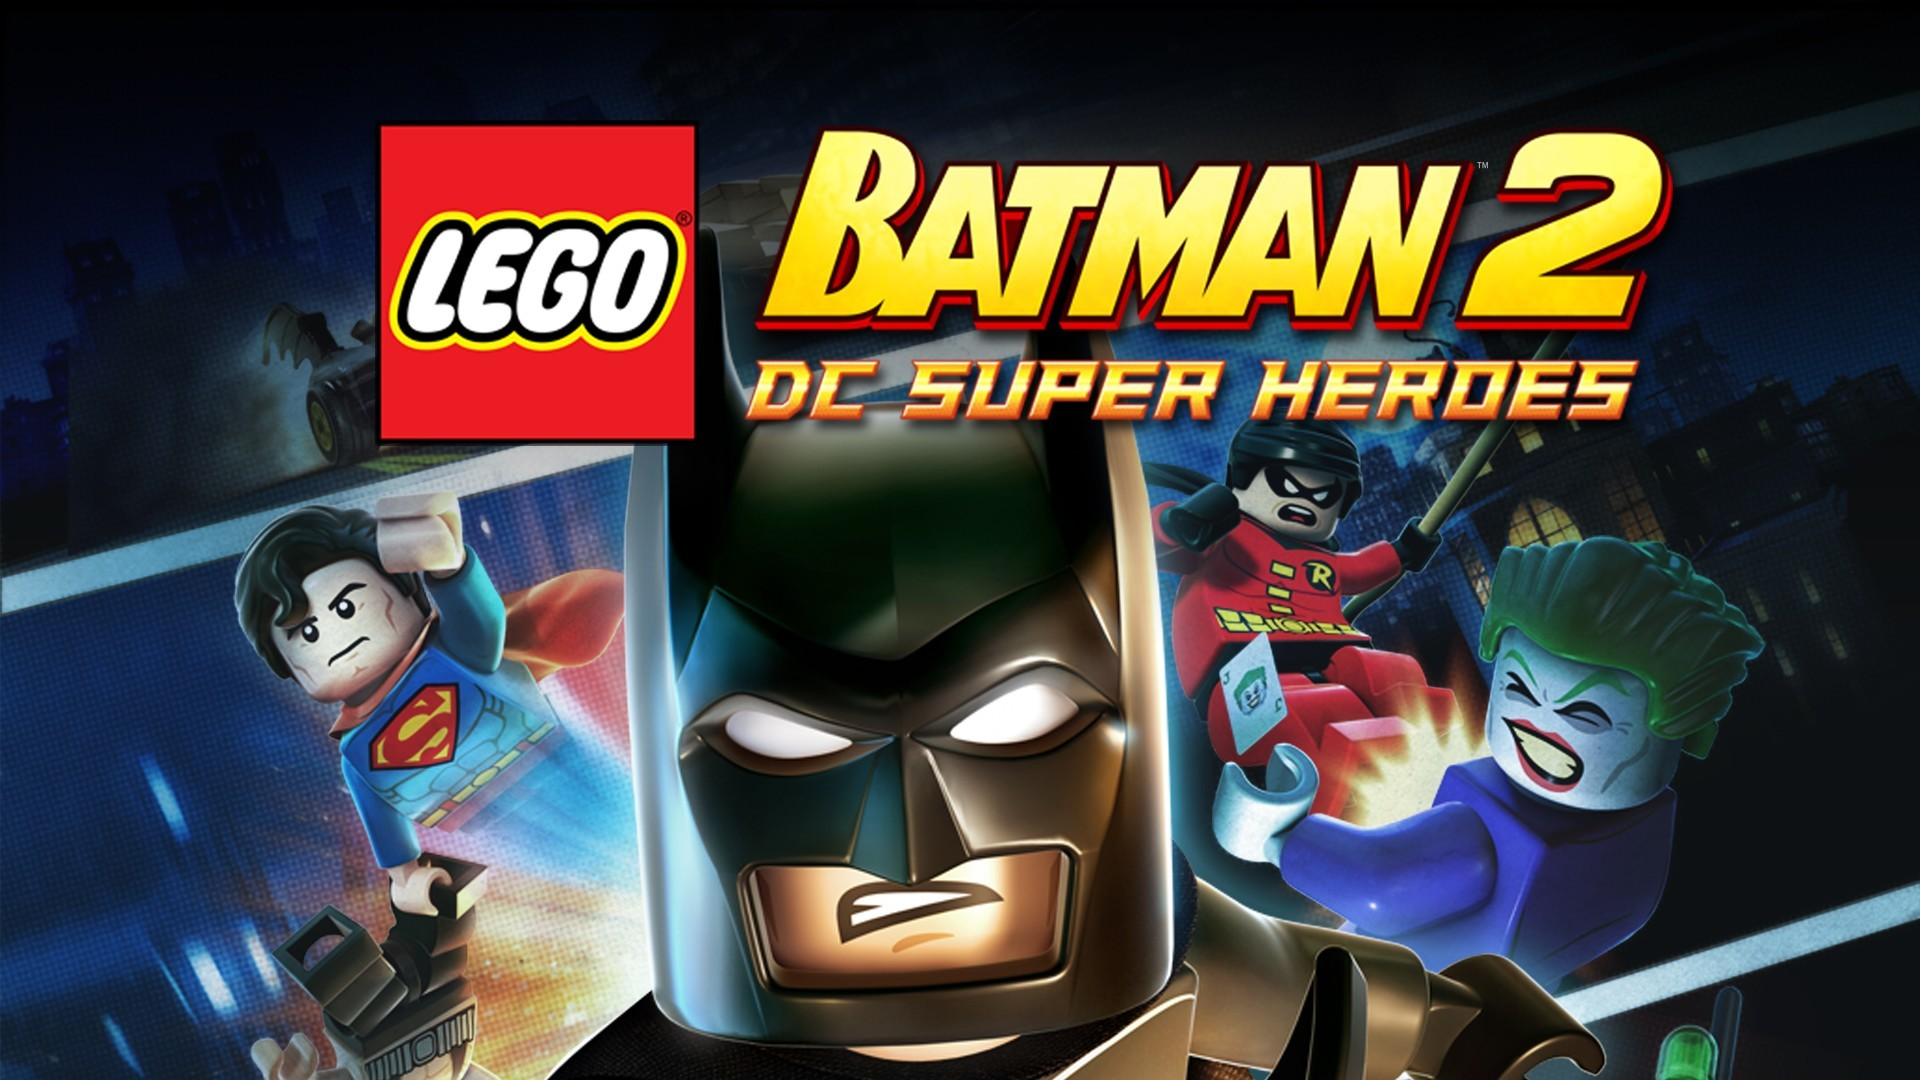 Lego Batman 2 Dc Super Heroes Pc Steam Game Fanatical